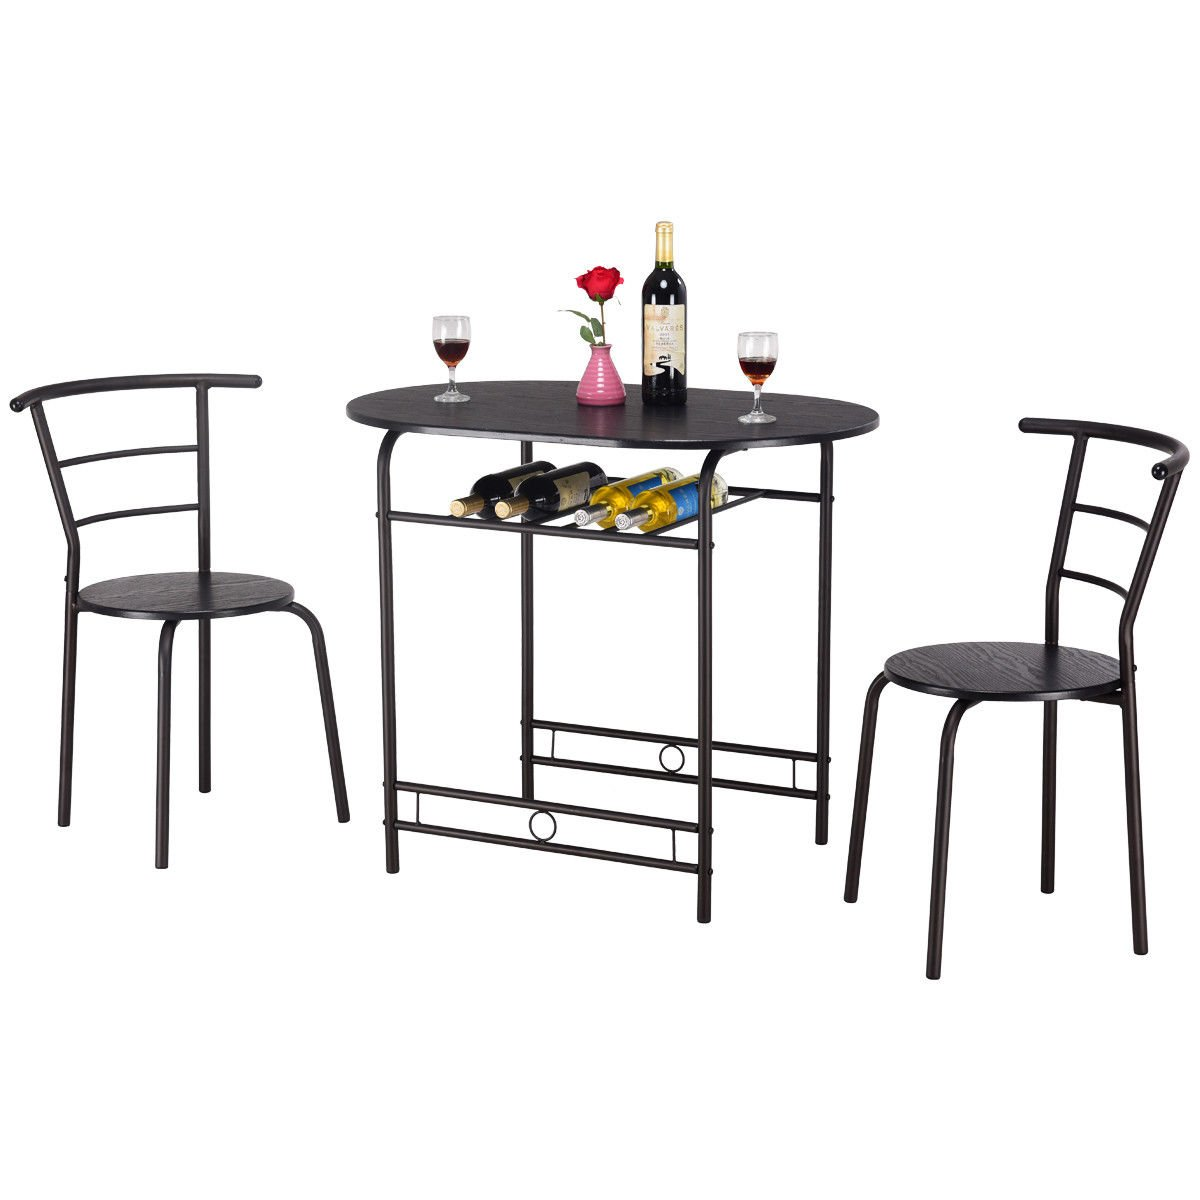 Giantex 3 PCS Dining Table Set w/1 Table and 2 Chairs Home Restaurant Breakfast Bistro Pub Kitchen Dining Room Furniture (Black)